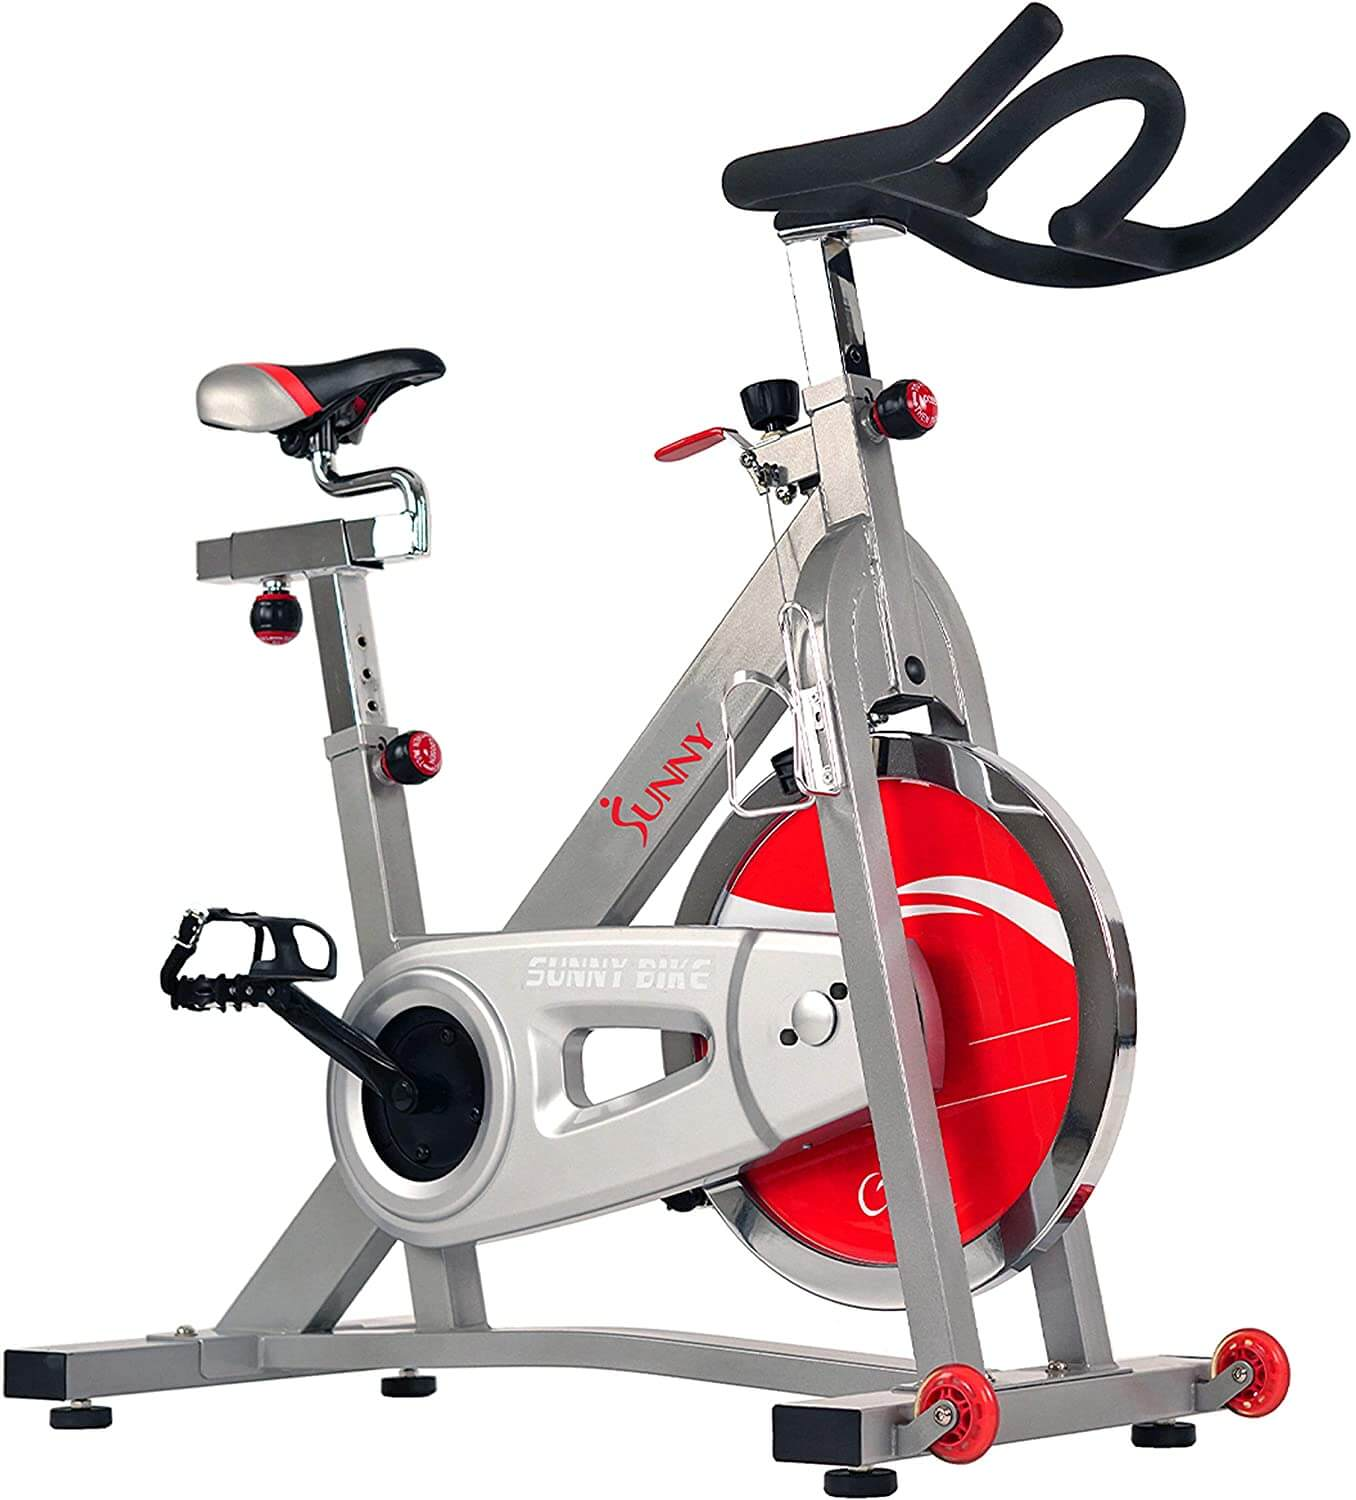 The Sunny Health & Fitness Pro Indoor Cycle review